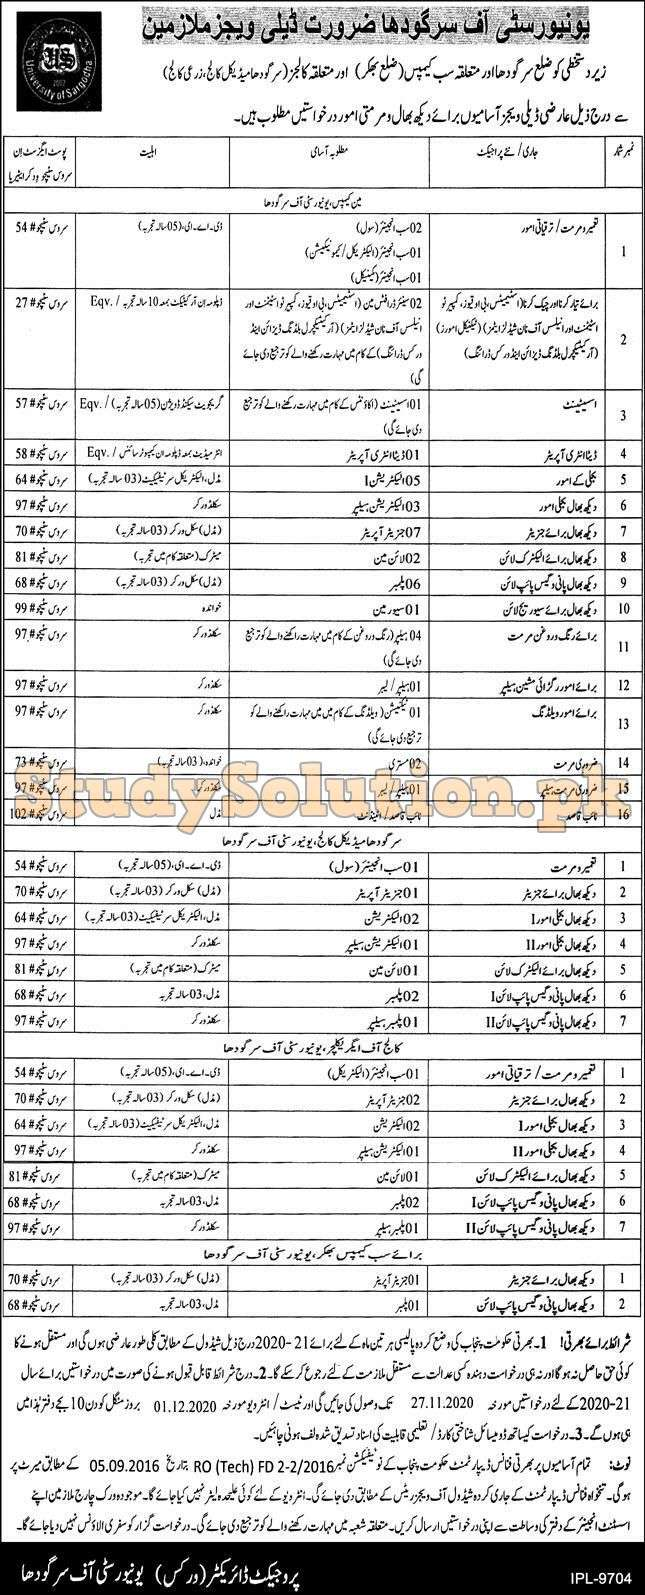 University of Sargodha Latest Jobs in Pakistan Nov 2020